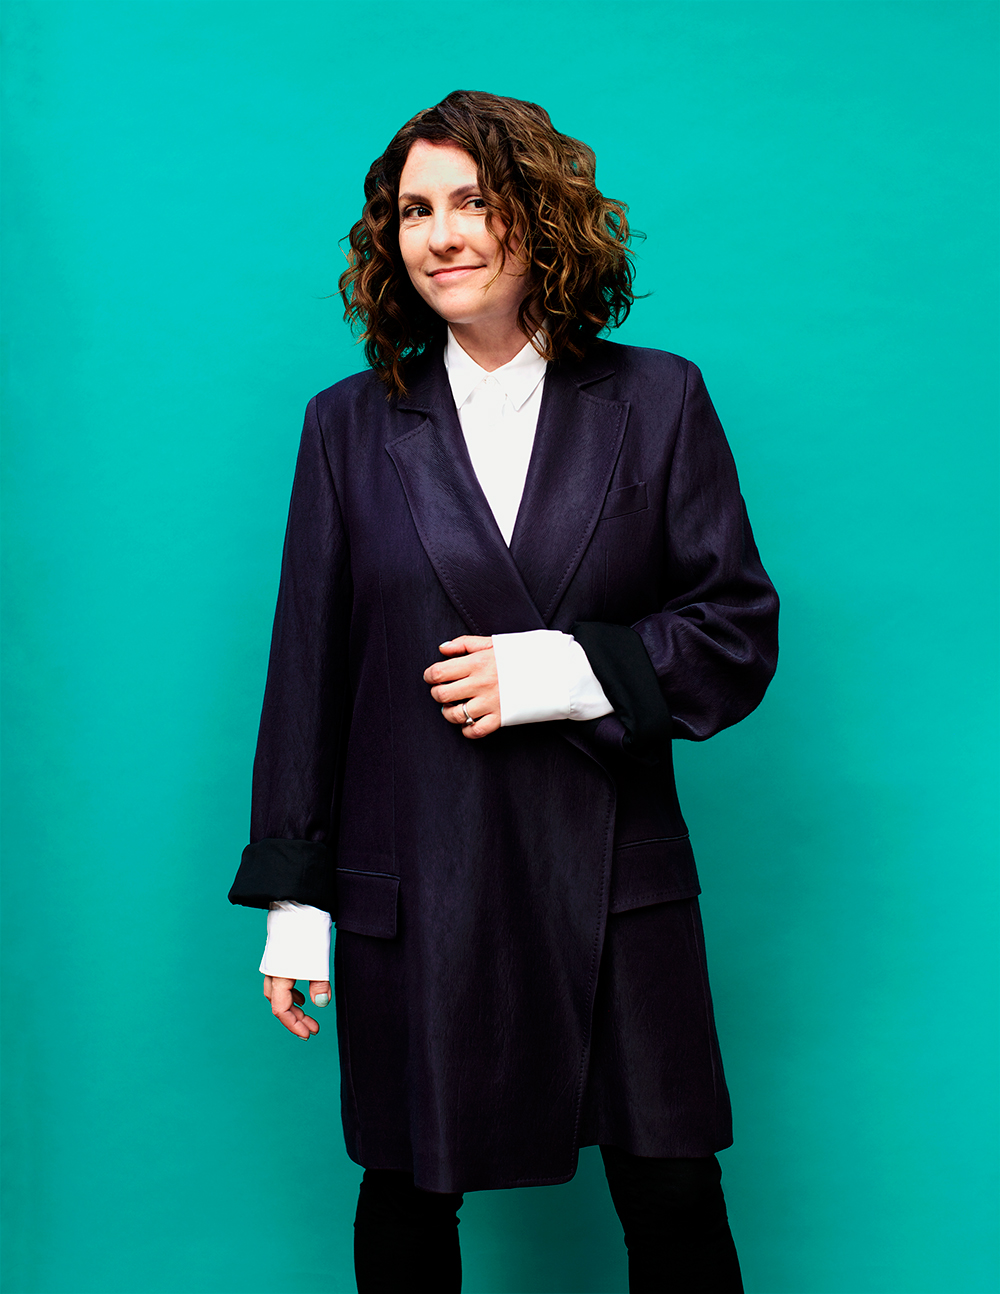 jill soloway - photo #32